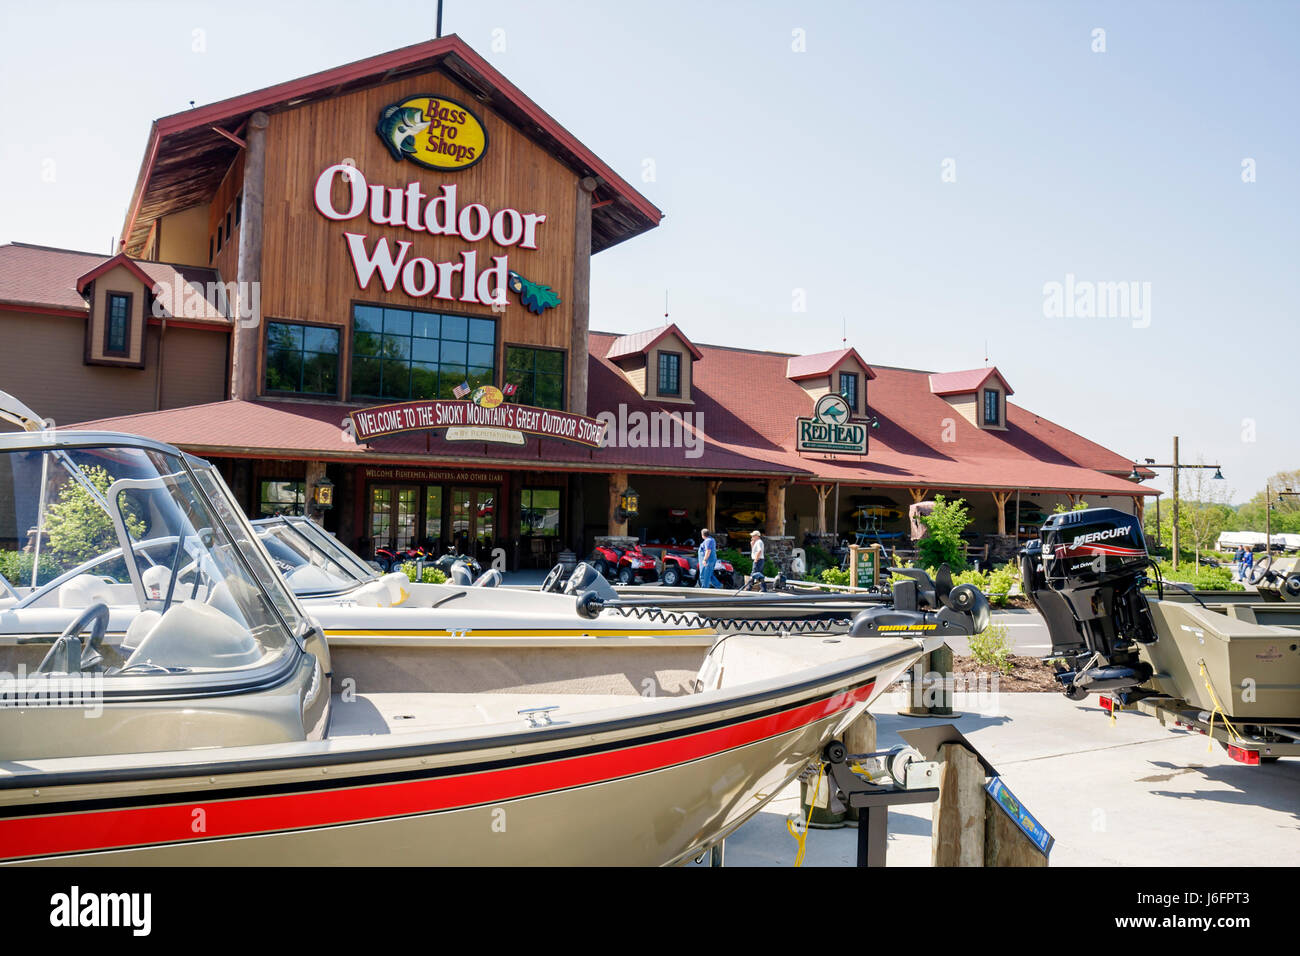 eb7bf1e9be Tennessee Sevierville Kodak Bass Pro Shops sporting goods outdoor  recreation retail chain exterior building name brand marketing